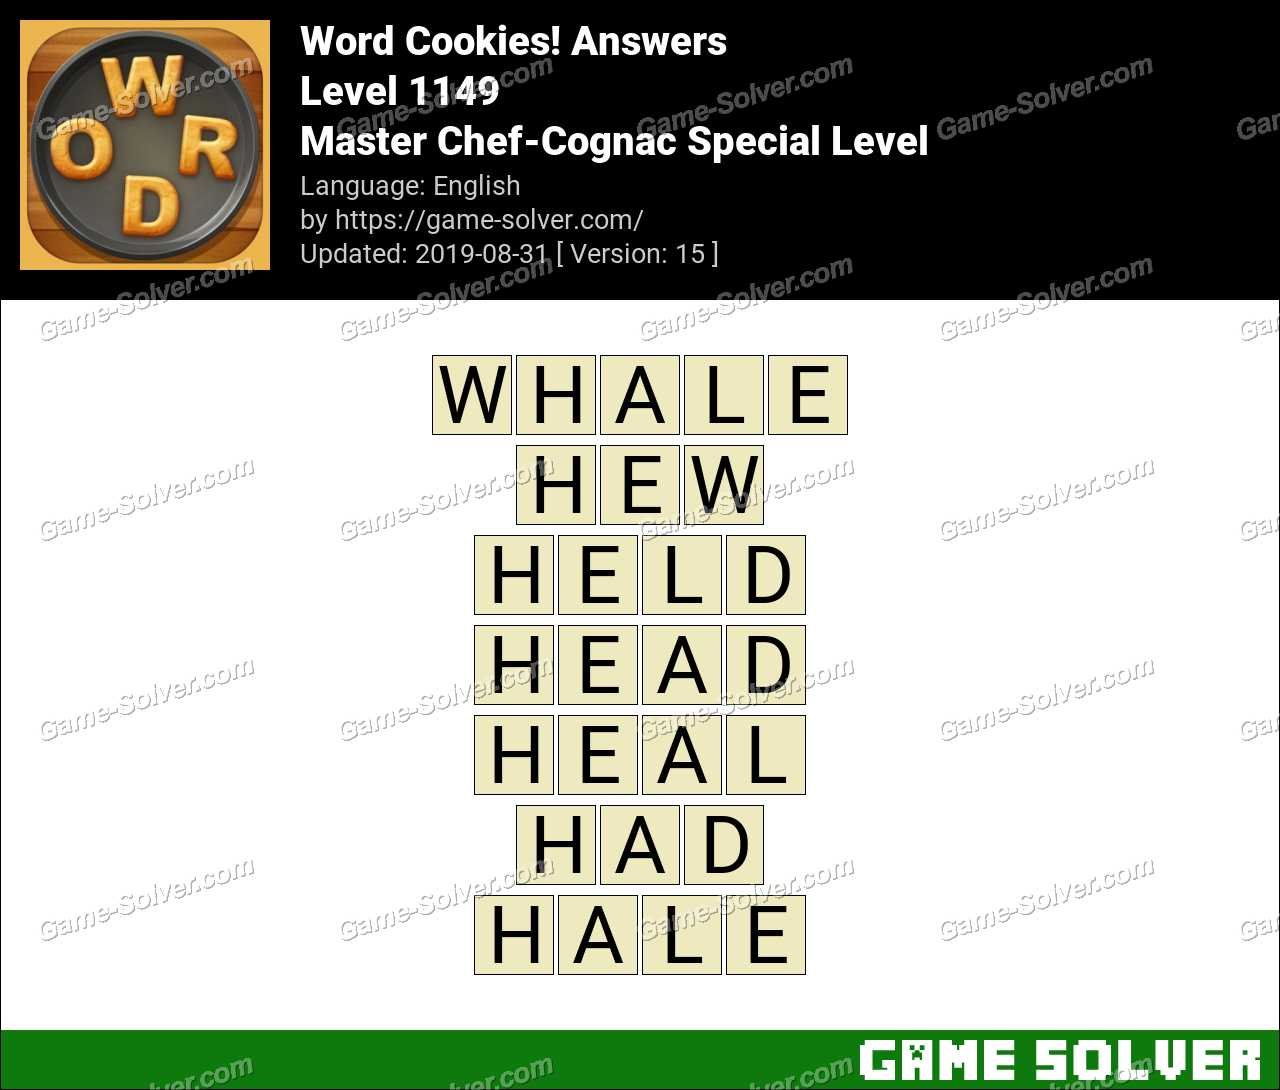 Word Cookies Master Chef-Cognac Special Level Answers